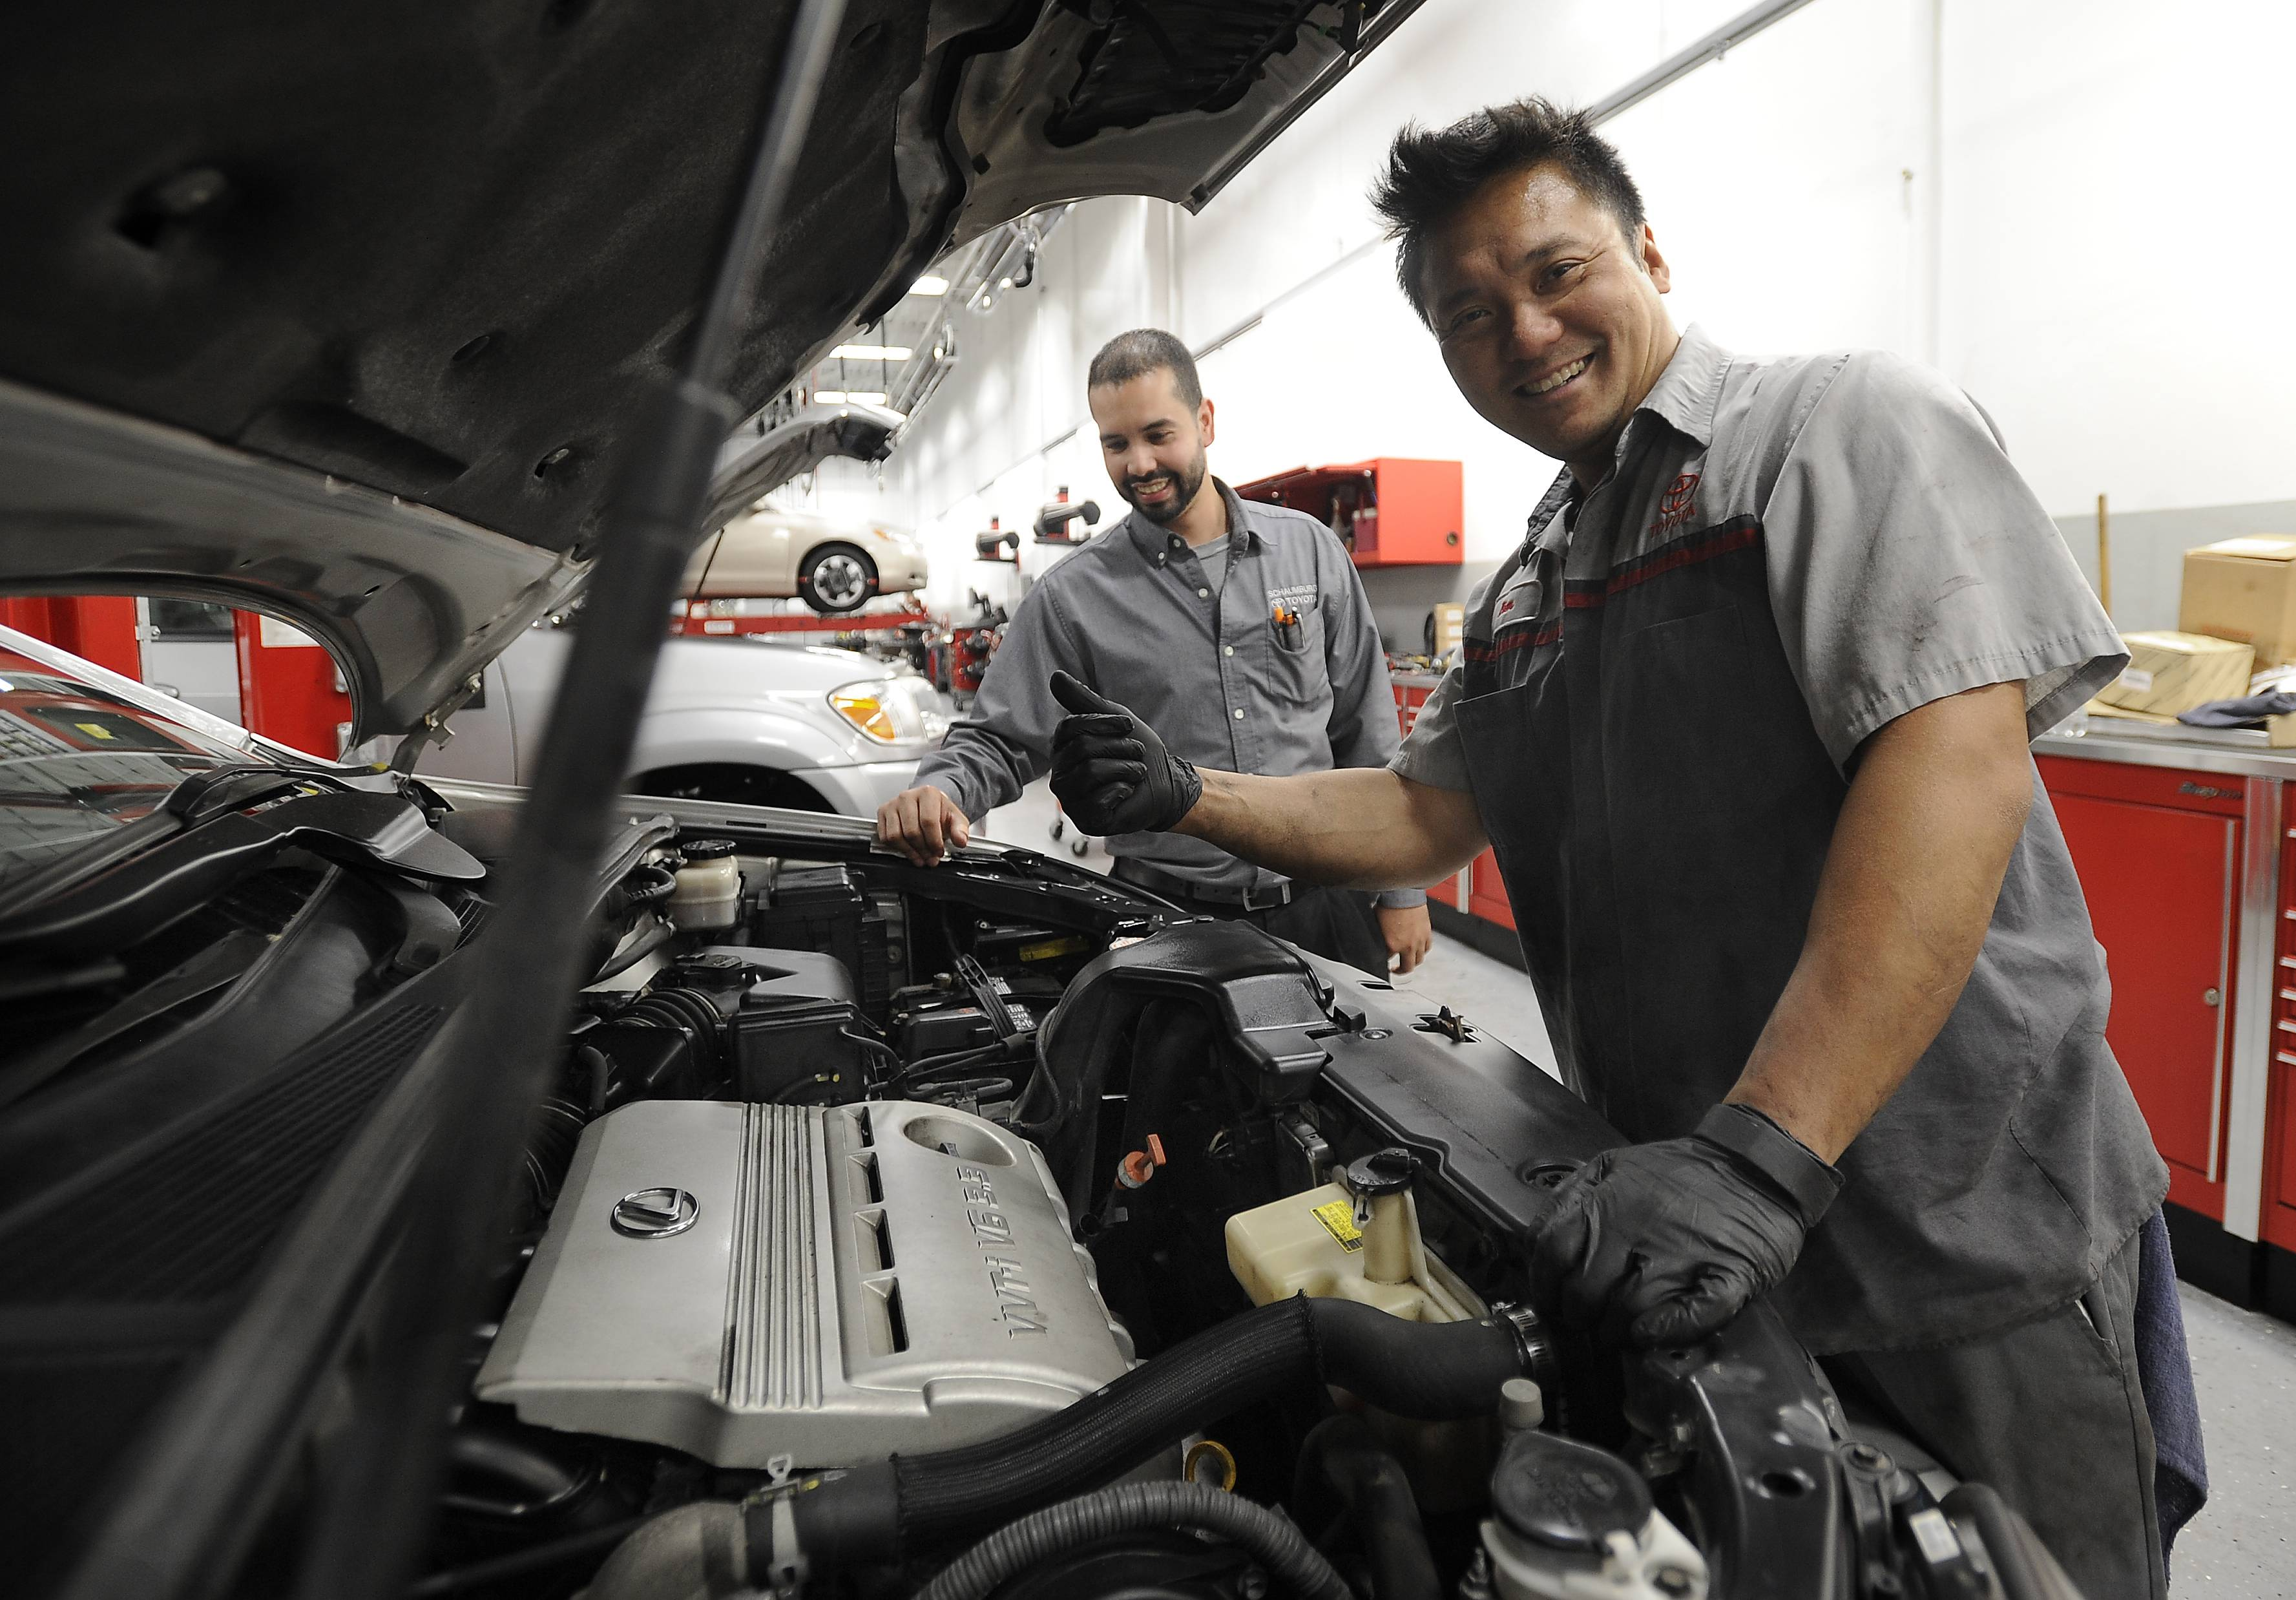 Schaumburg Toyota service technician Anthony Mejias, Assistant Service Manager (back) with Bien Arquiza, Master Technician at the dealership. All cars at the tent sale this week have been given a full inspection that covers 100 items.